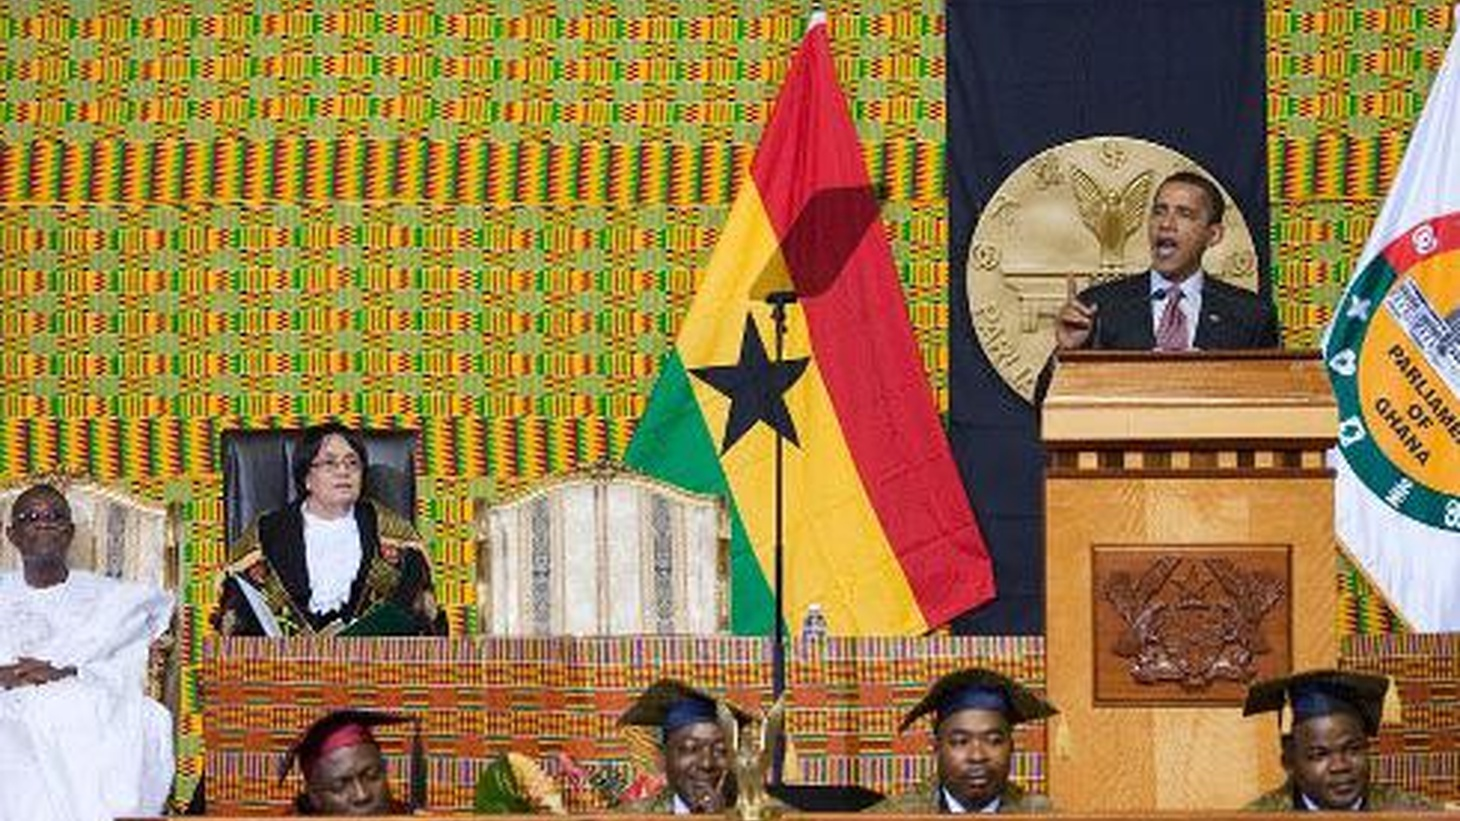 Ghana is all dressed up for President Obama's first official visit to sub-Saharan Africa. Is the rest of the continent ready for tough love? Does international aid lead to dependence?  Can it be structured to help countries help themselves? Also, GM emerges from bankruptcy, and rhesus monkeys and the fountain of youth.